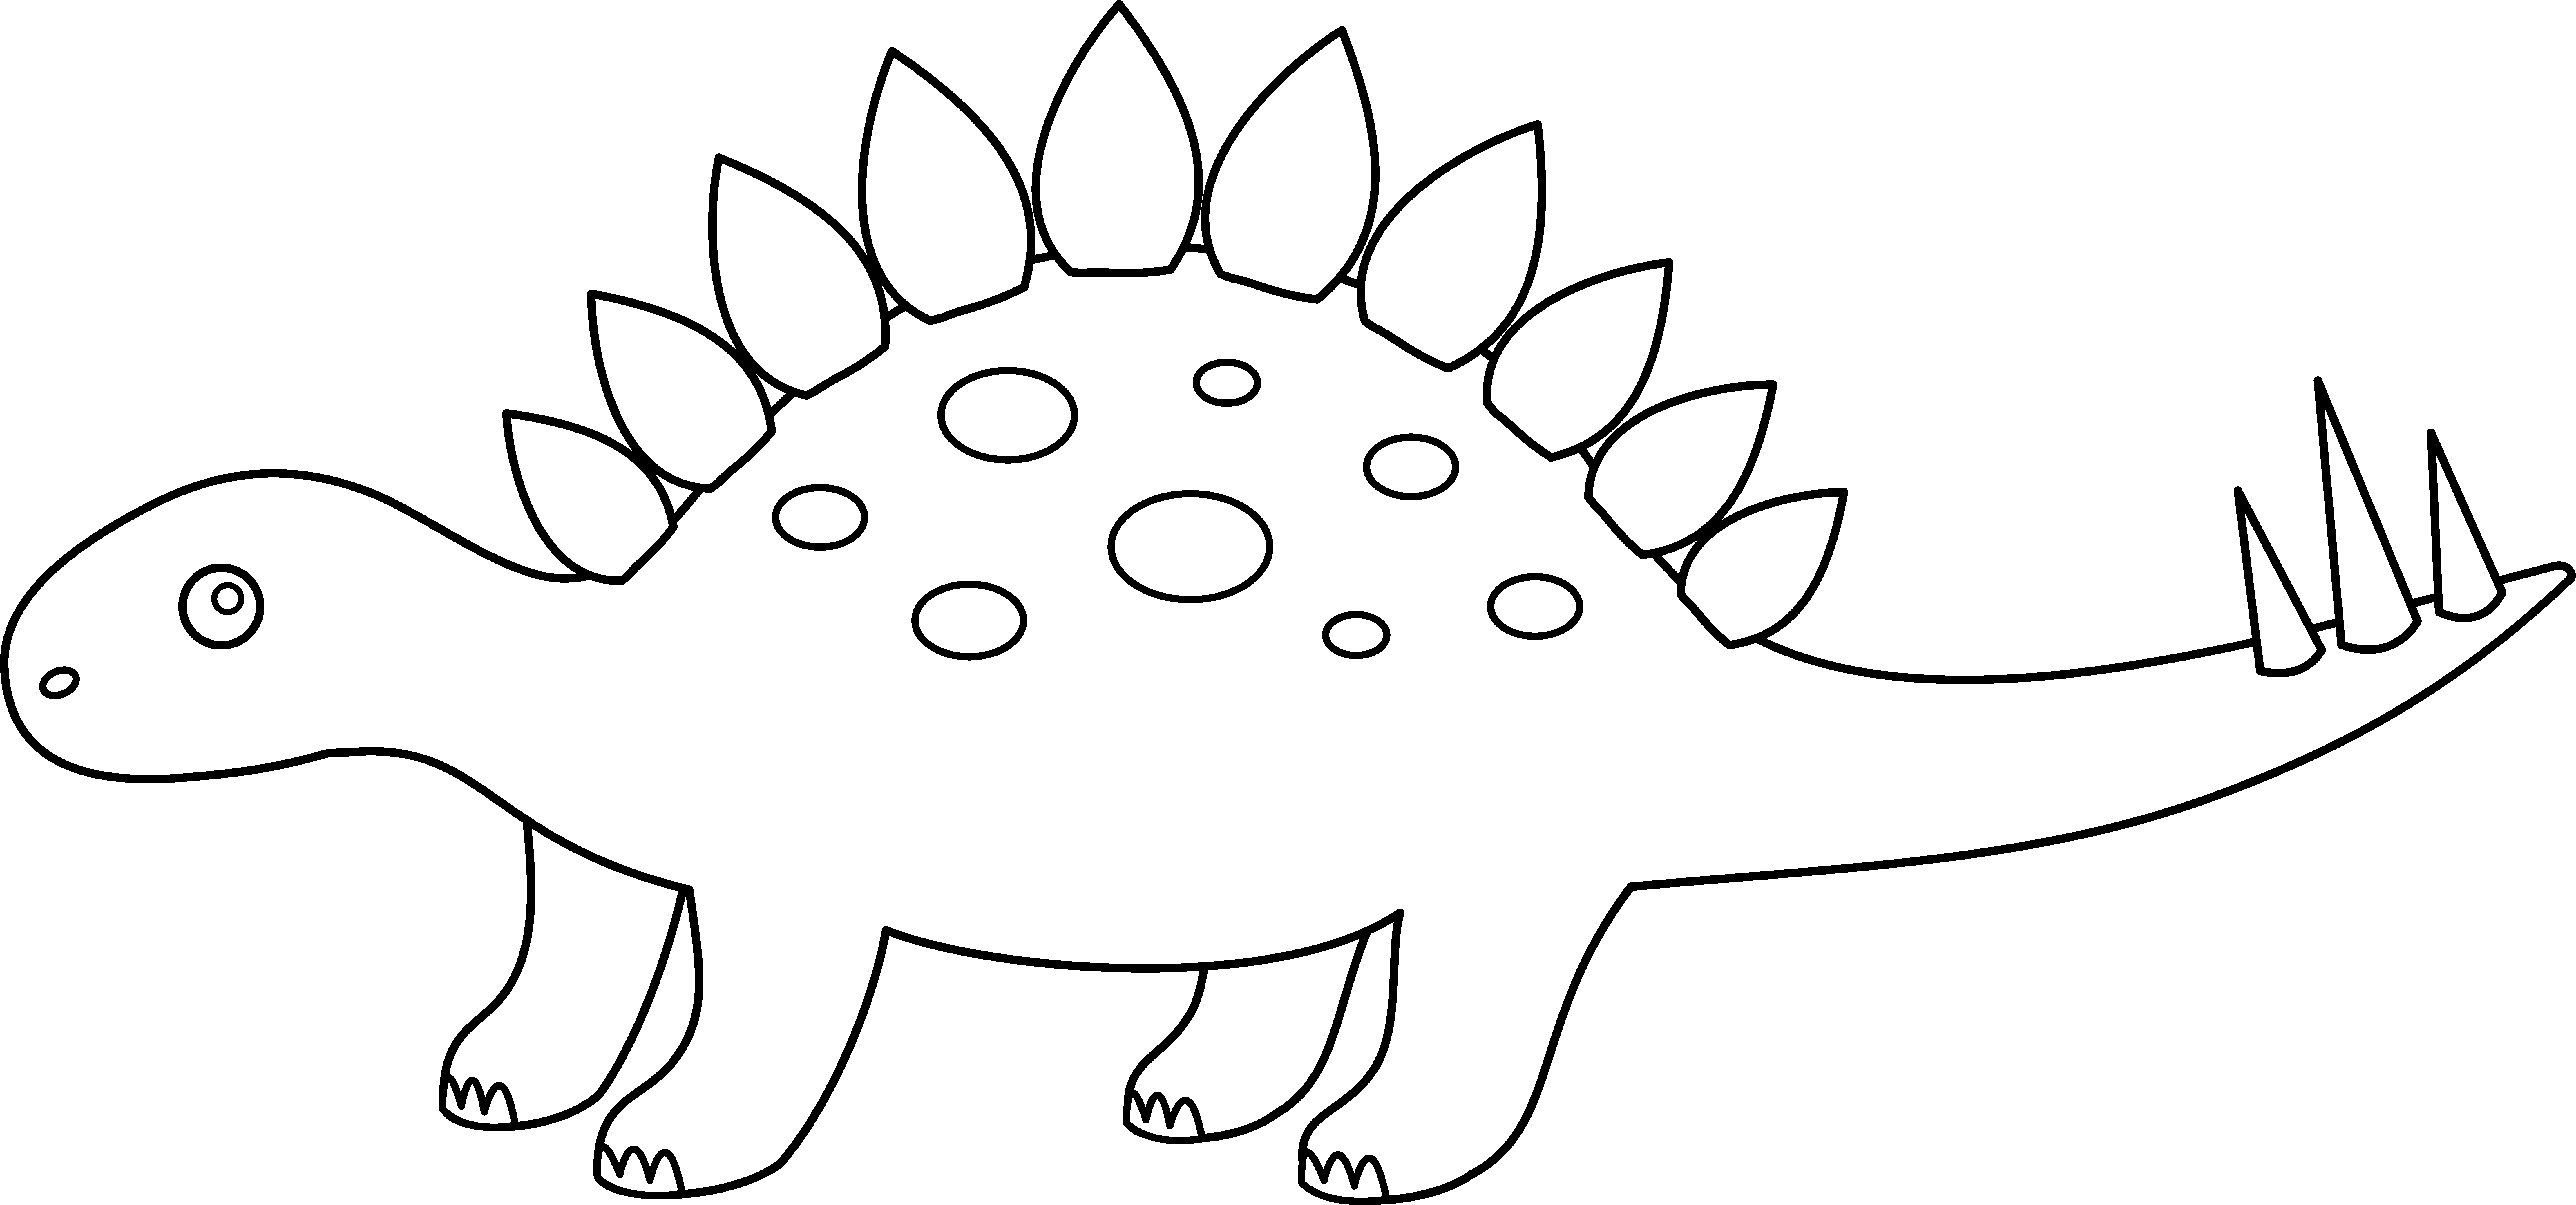 picture of a stegosaurus free stegosaurus outline download free clip art free a of picture stegosaurus